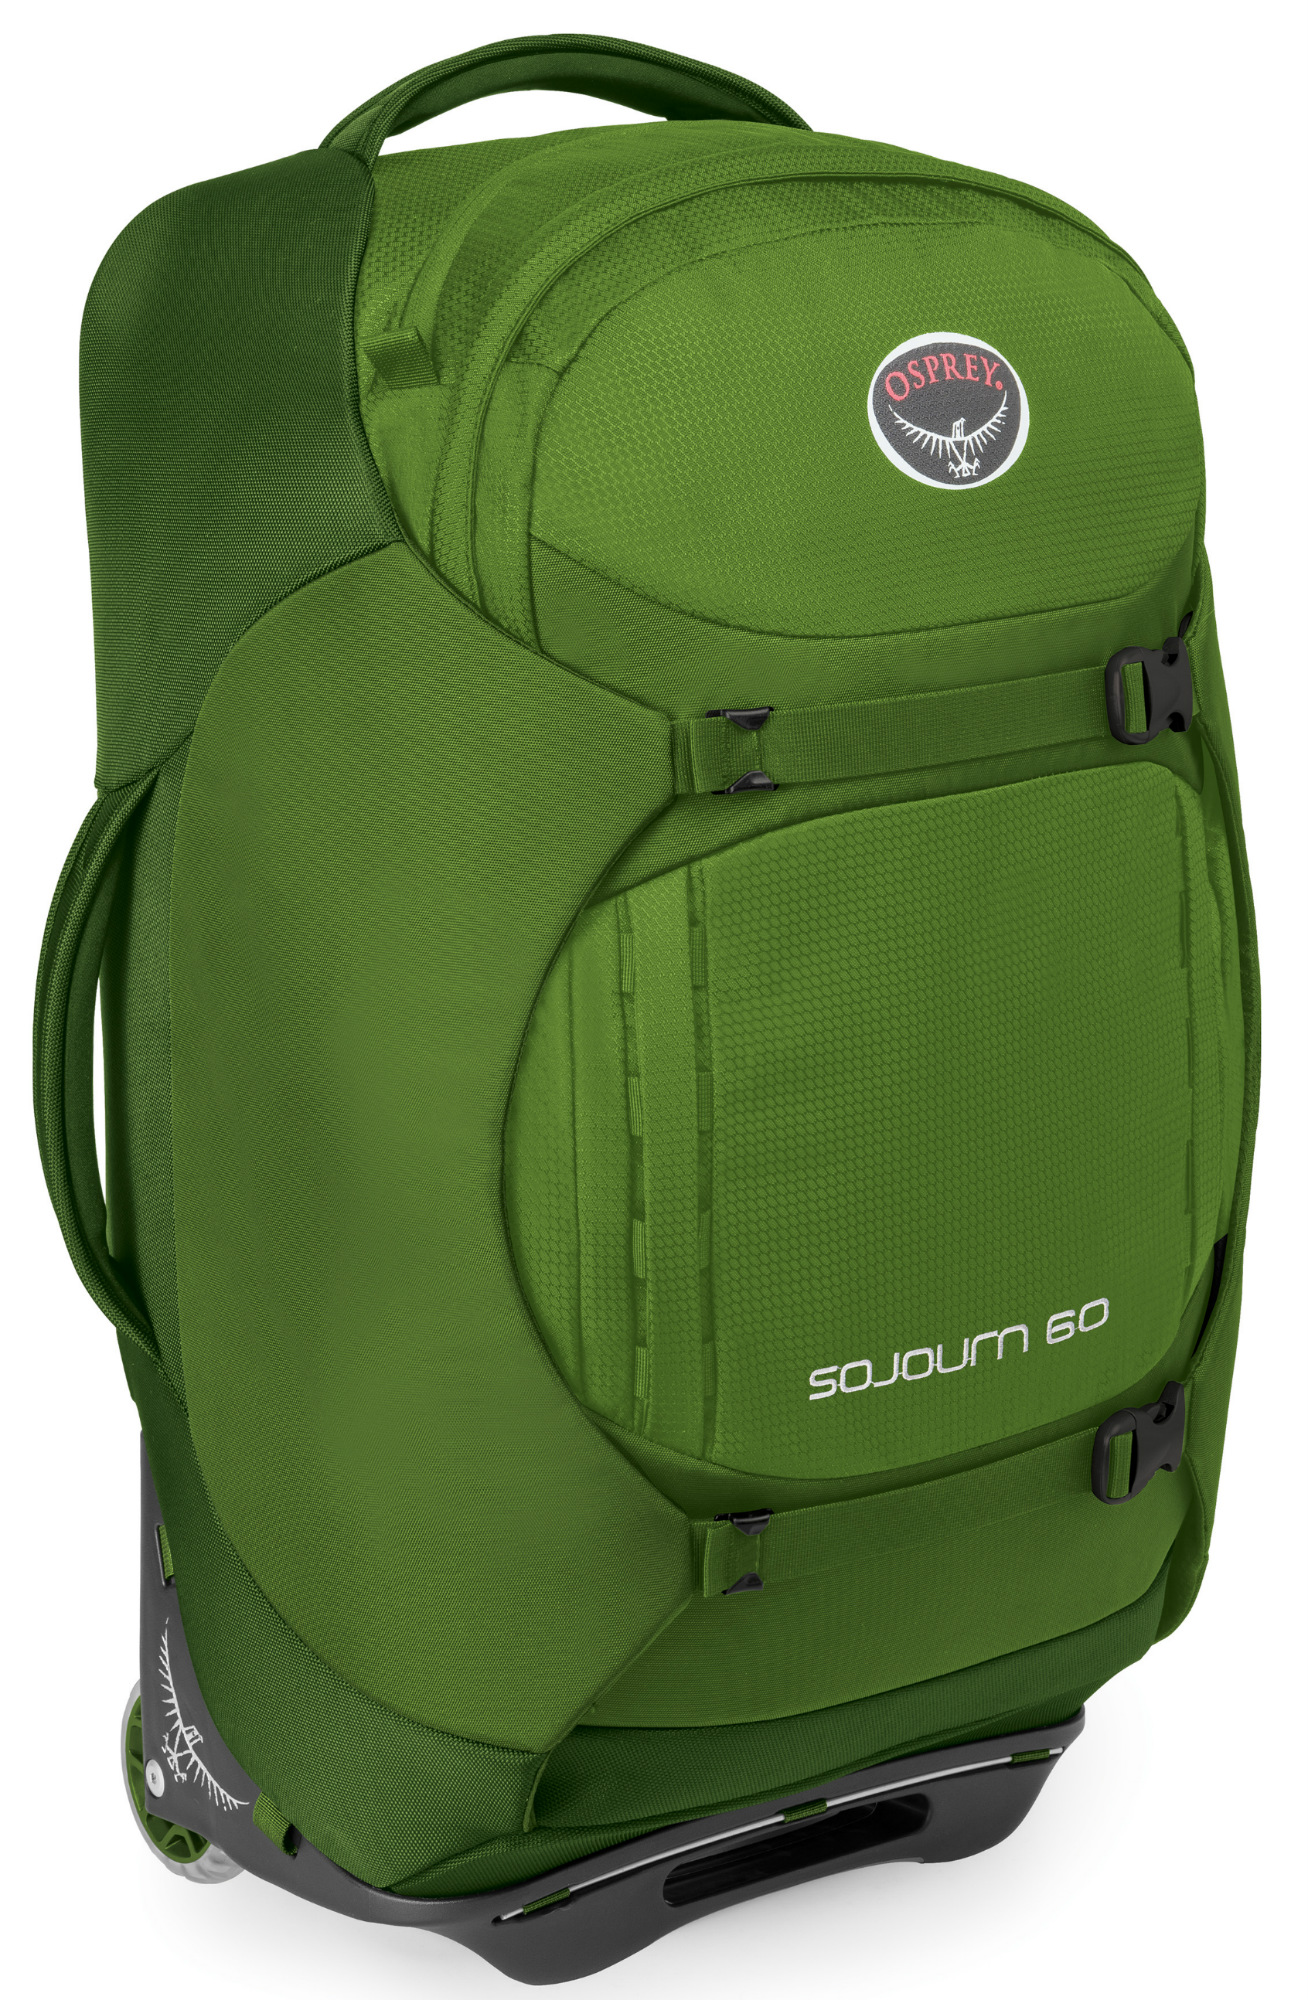 Osprey Sojourn 25 60 L Wheeled Convertible Pack — CampSaver e1a2894190